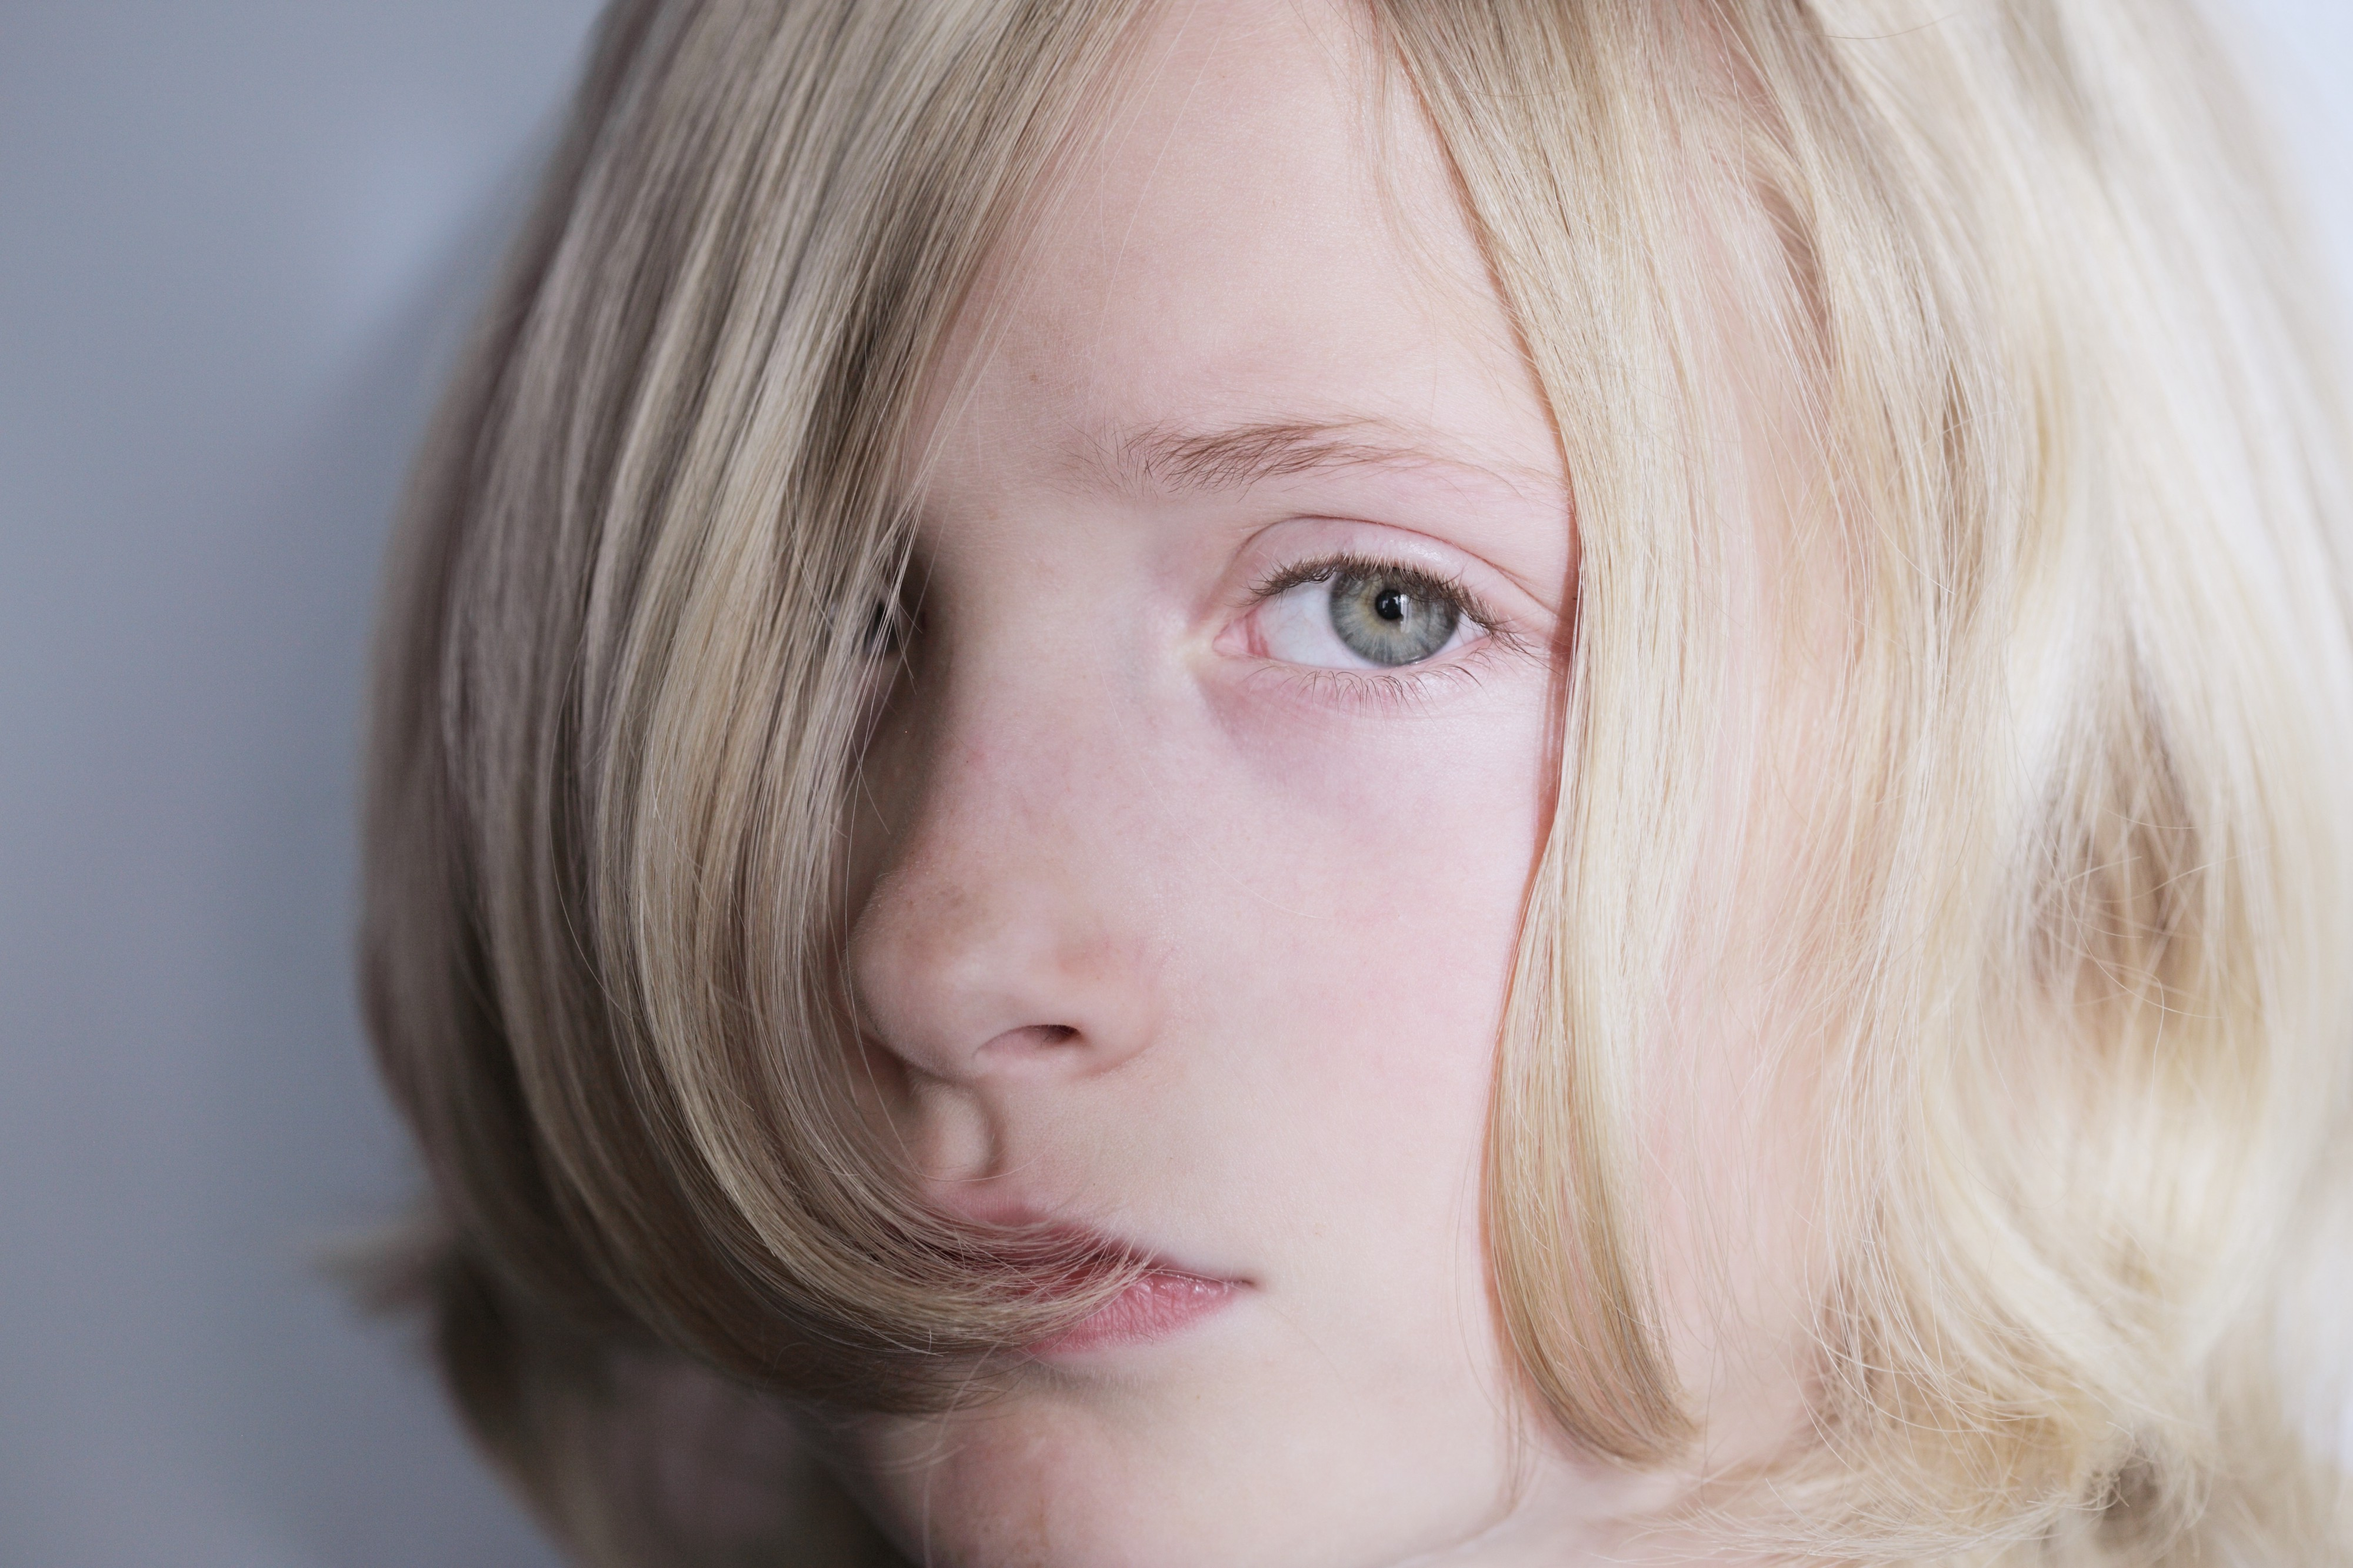 Young person with blond hair covering right eye, looking at camera.